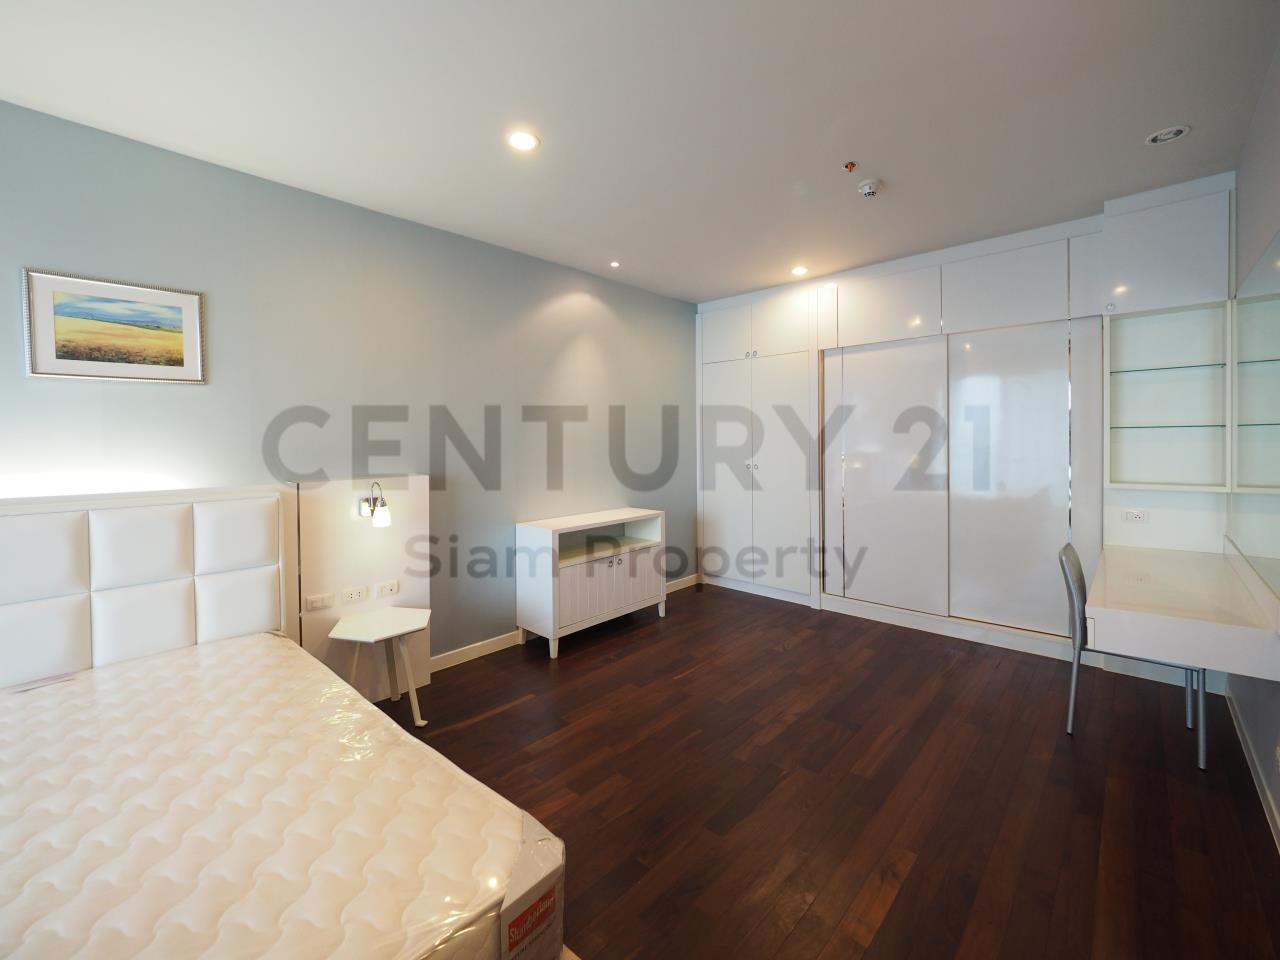 Century21 Siam Property Agency's Circle Condominium  7